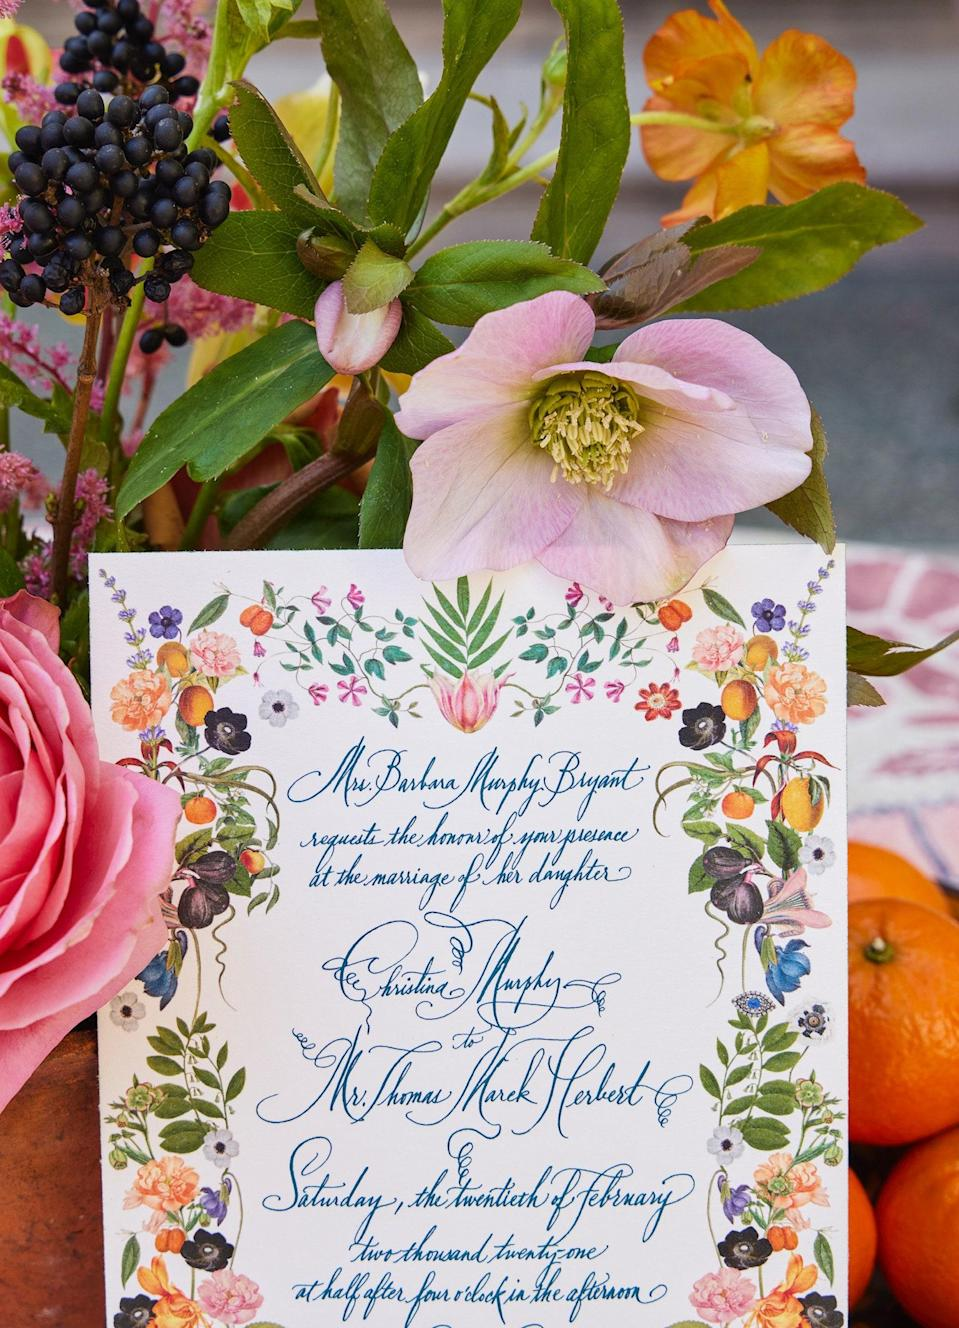 """This is our wedding invitation by <a href=""""https://www.stephaniefishwick.com/"""" rel=""""nofollow noopener"""" target=""""_blank"""" data-ylk=""""slk:Stephanie Fishwick"""" class=""""link rapid-noclick-resp"""">Stephanie Fishwick</a>. She created this font especially for us!"""